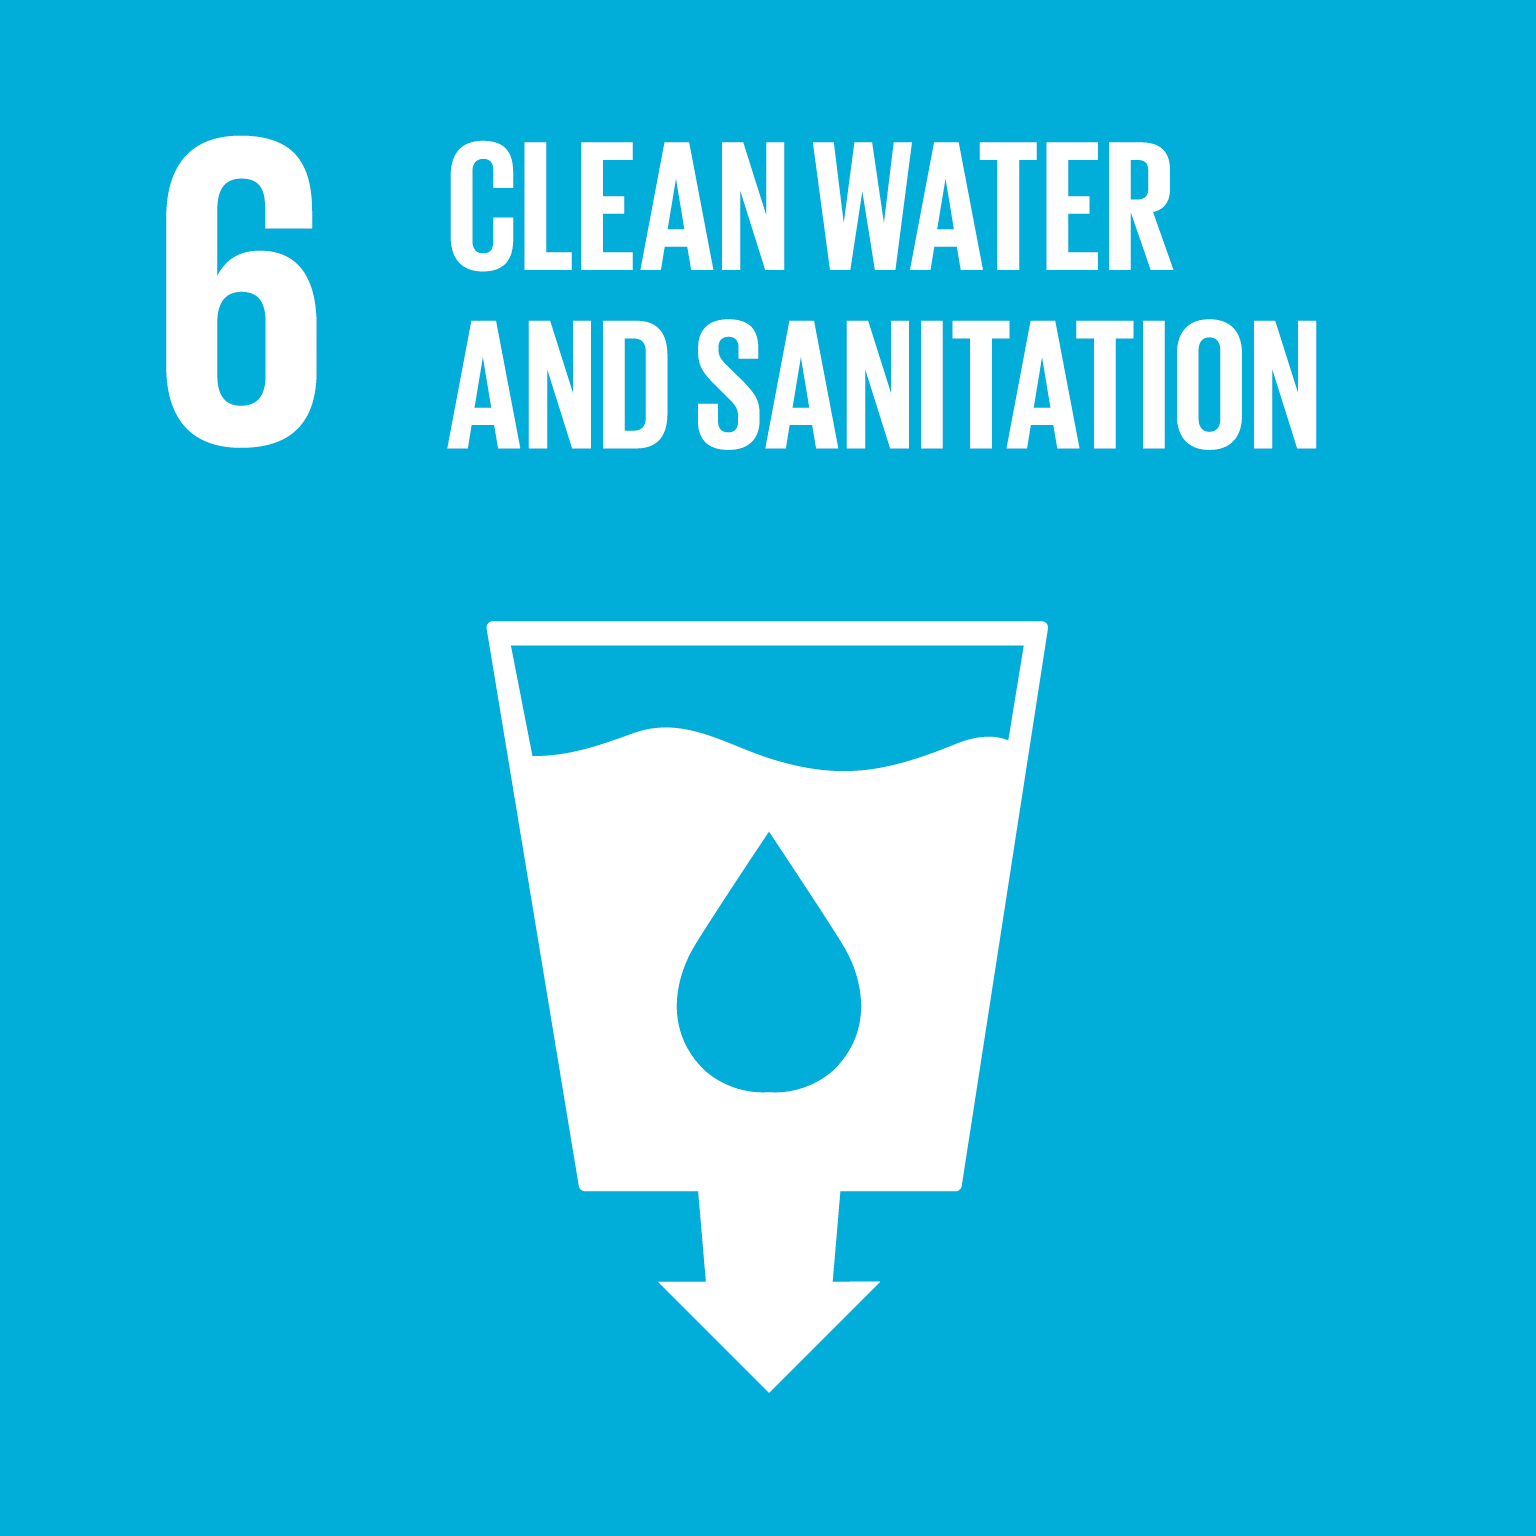 Clean water and sanitation - Sustainable Development Goals